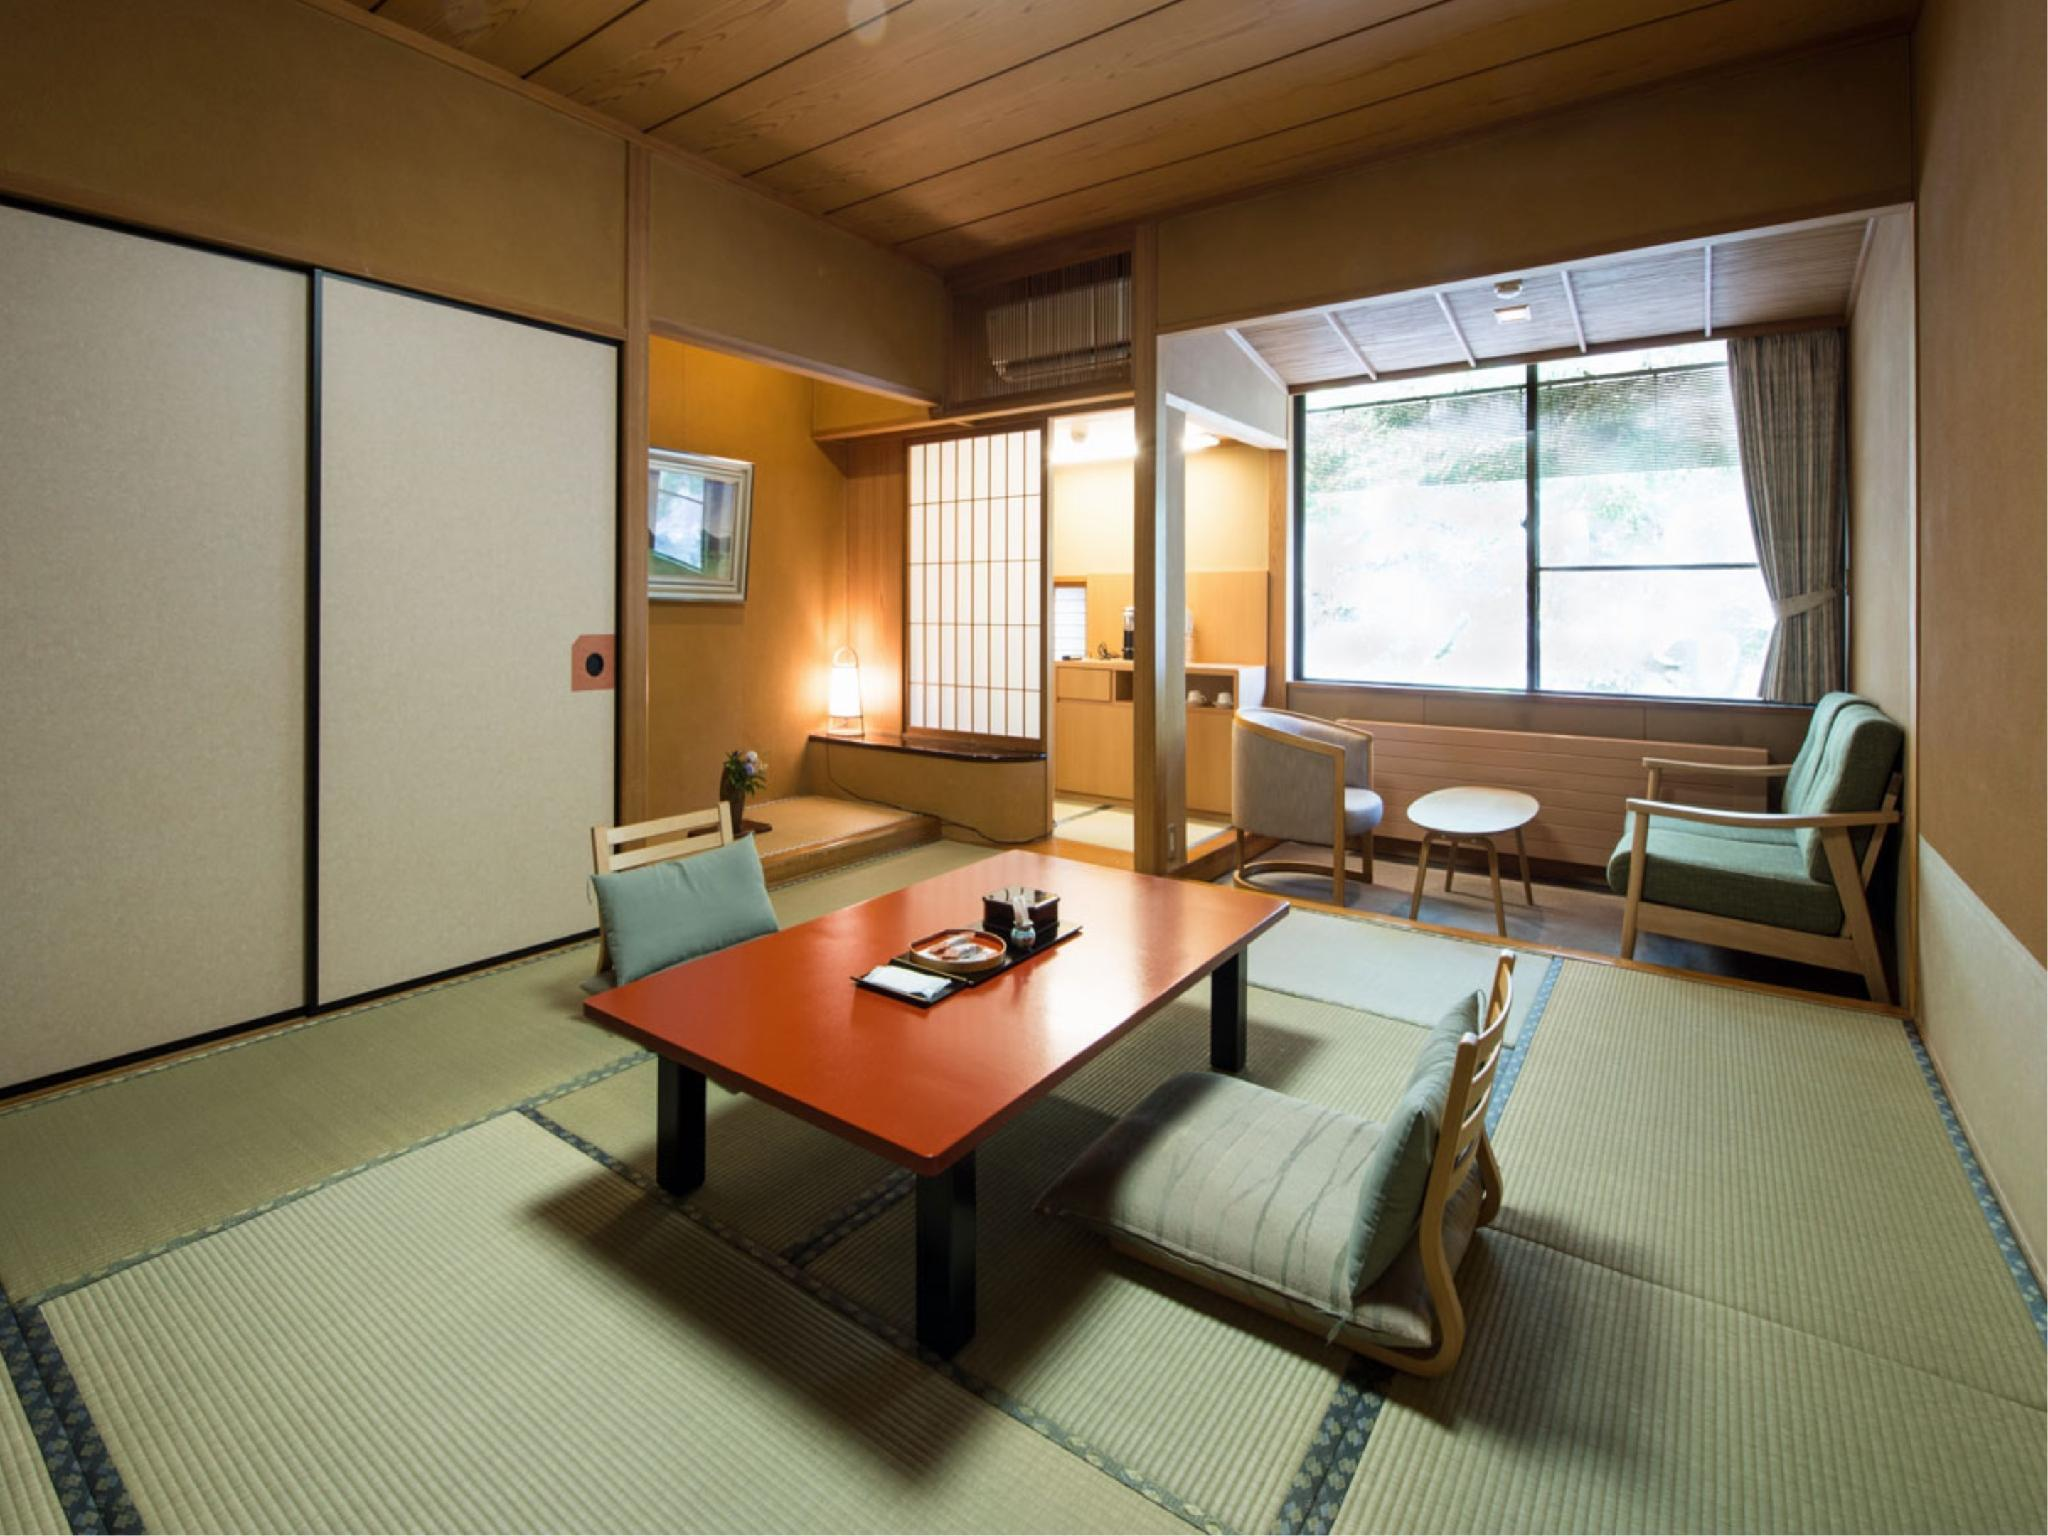 日式客房(西翼) (West Wing Japanese Style Room)